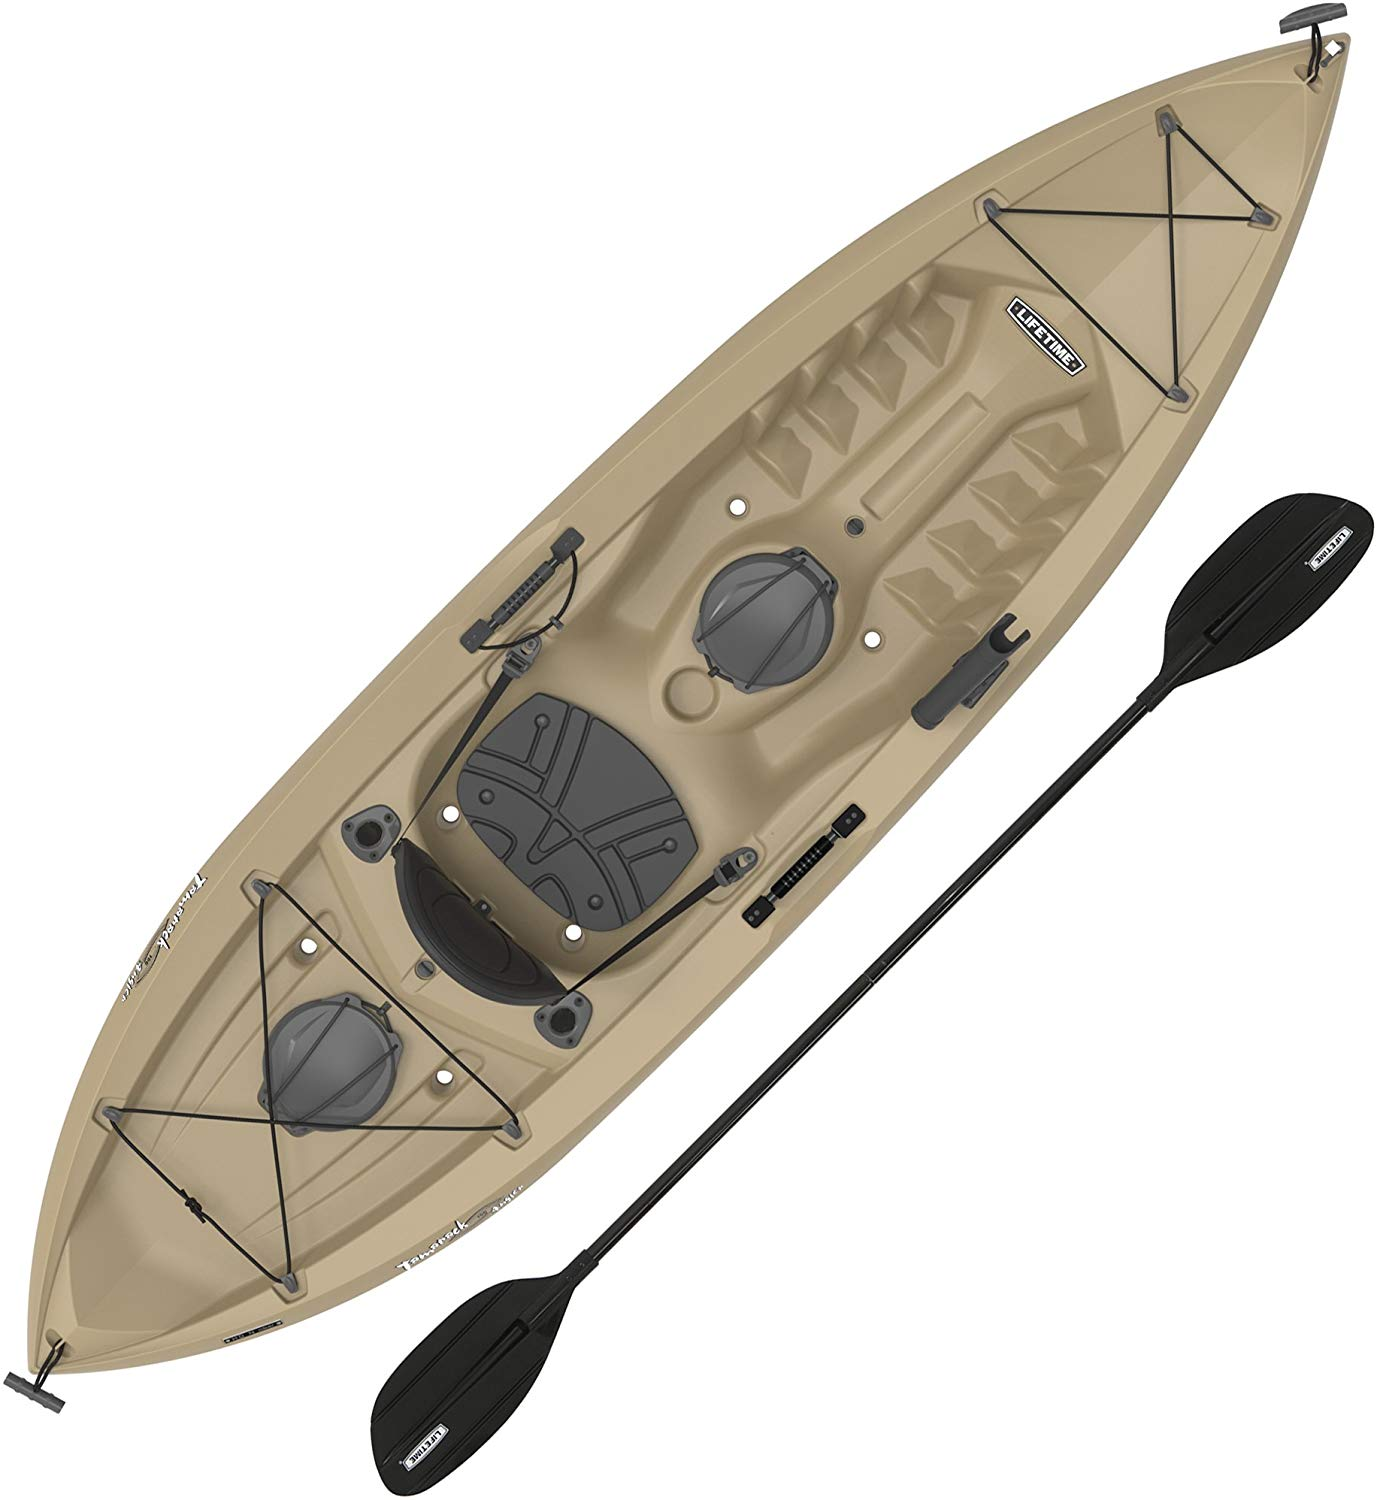 Best Kayak Under 1000 in 2020